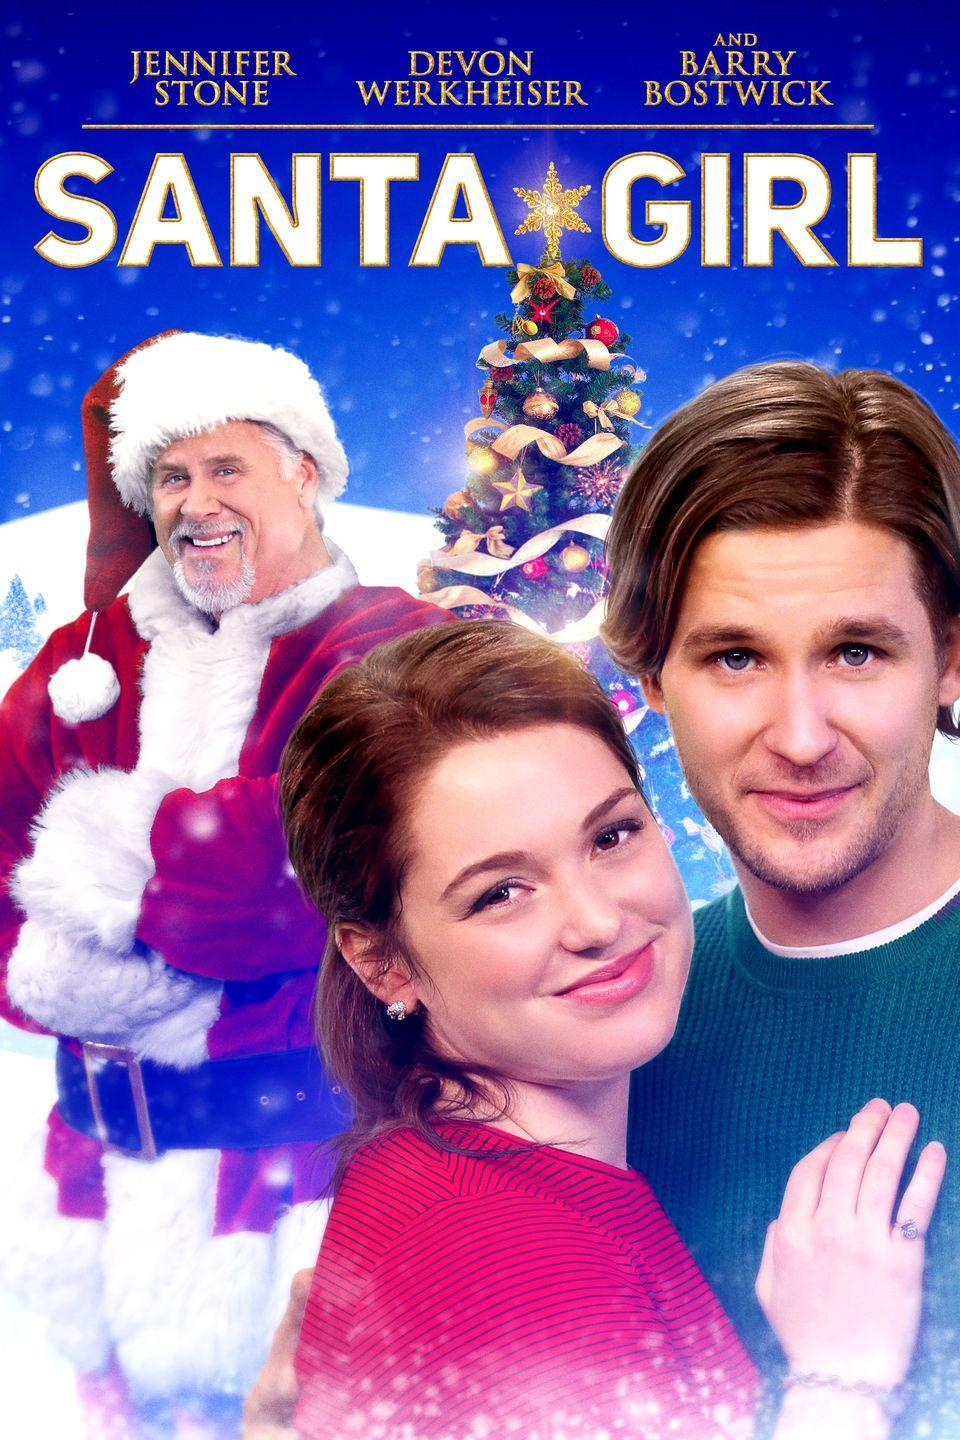 """<p>In this rom-com, Jennifer Stone from <em>Wizards of Waverly Place </em>plays the only daughter of Santa Claus, and though she's obligated to marry the son of Jack Frost, she's allowed to attend a semester of college and experience the """"real world"""" first. </p><p><a class=""""link rapid-noclick-resp"""" href=""""https://www.netflix.com/title/81152930"""" rel=""""nofollow noopener"""" target=""""_blank"""" data-ylk=""""slk:STREAM NOW"""">STREAM NOW</a></p>"""